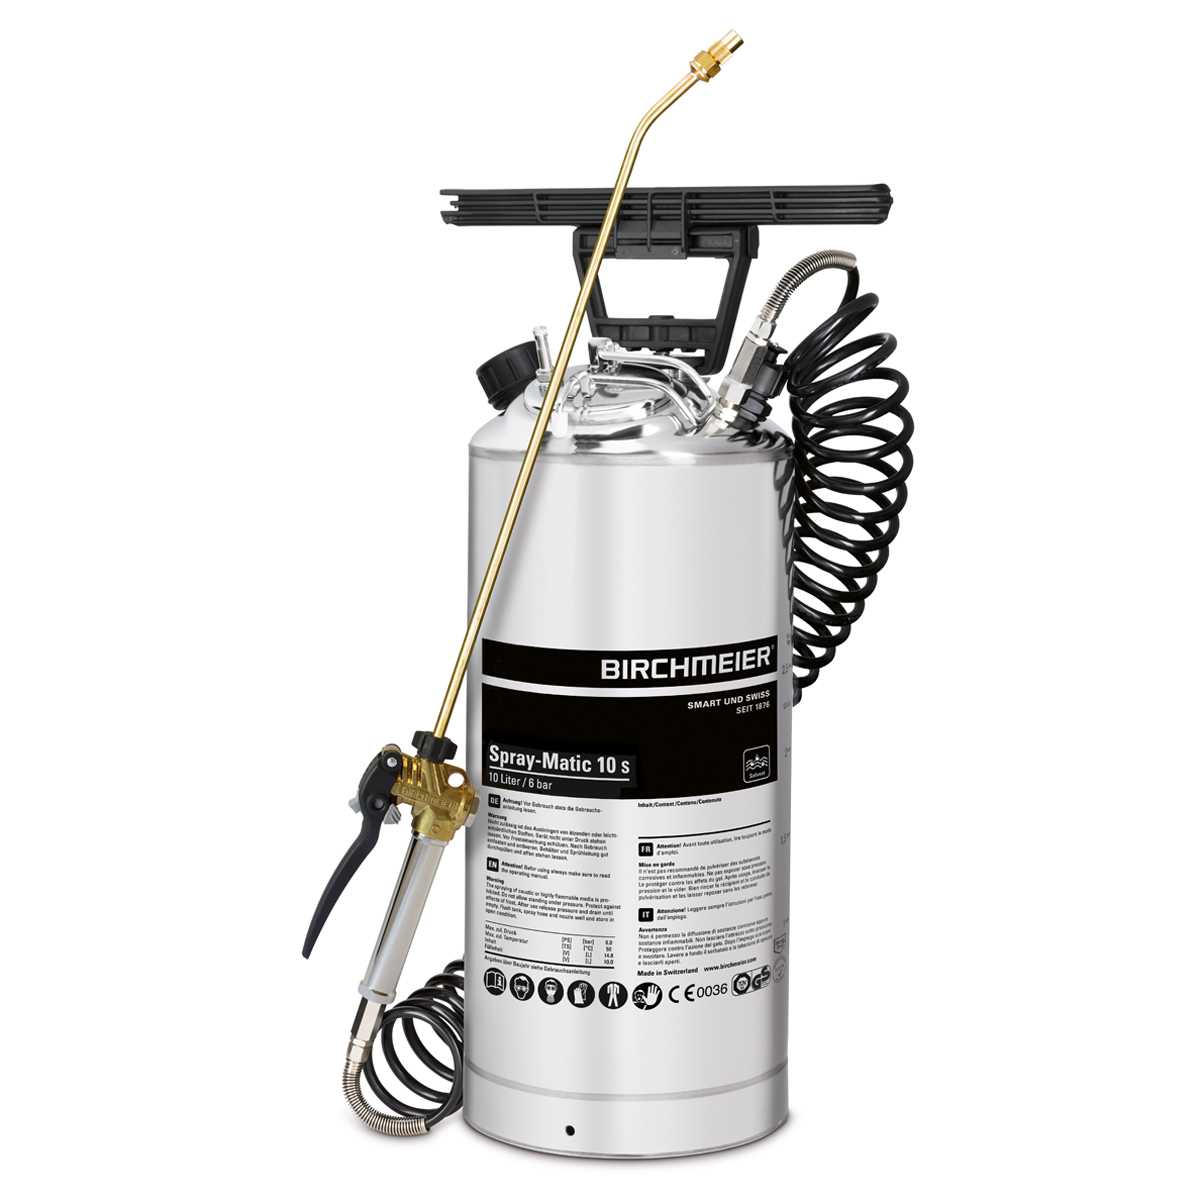 Spray-Matic 10 S with compressed-air union